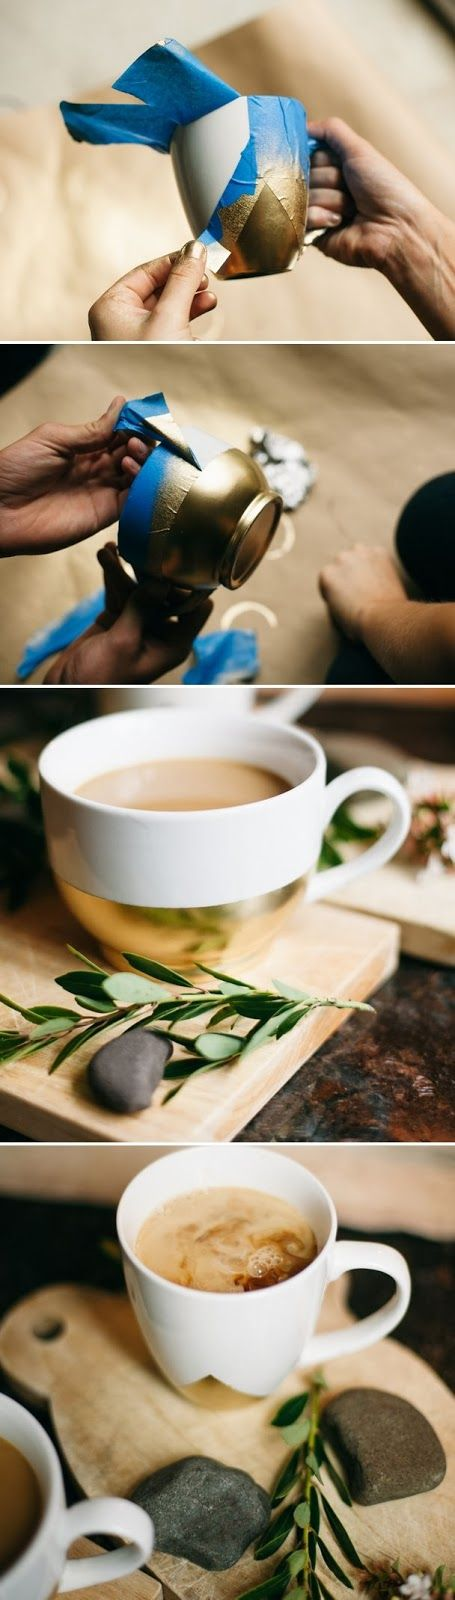 DIY gold mugs. This is exactly how I made my decorative wine glasses for Christmas last year!